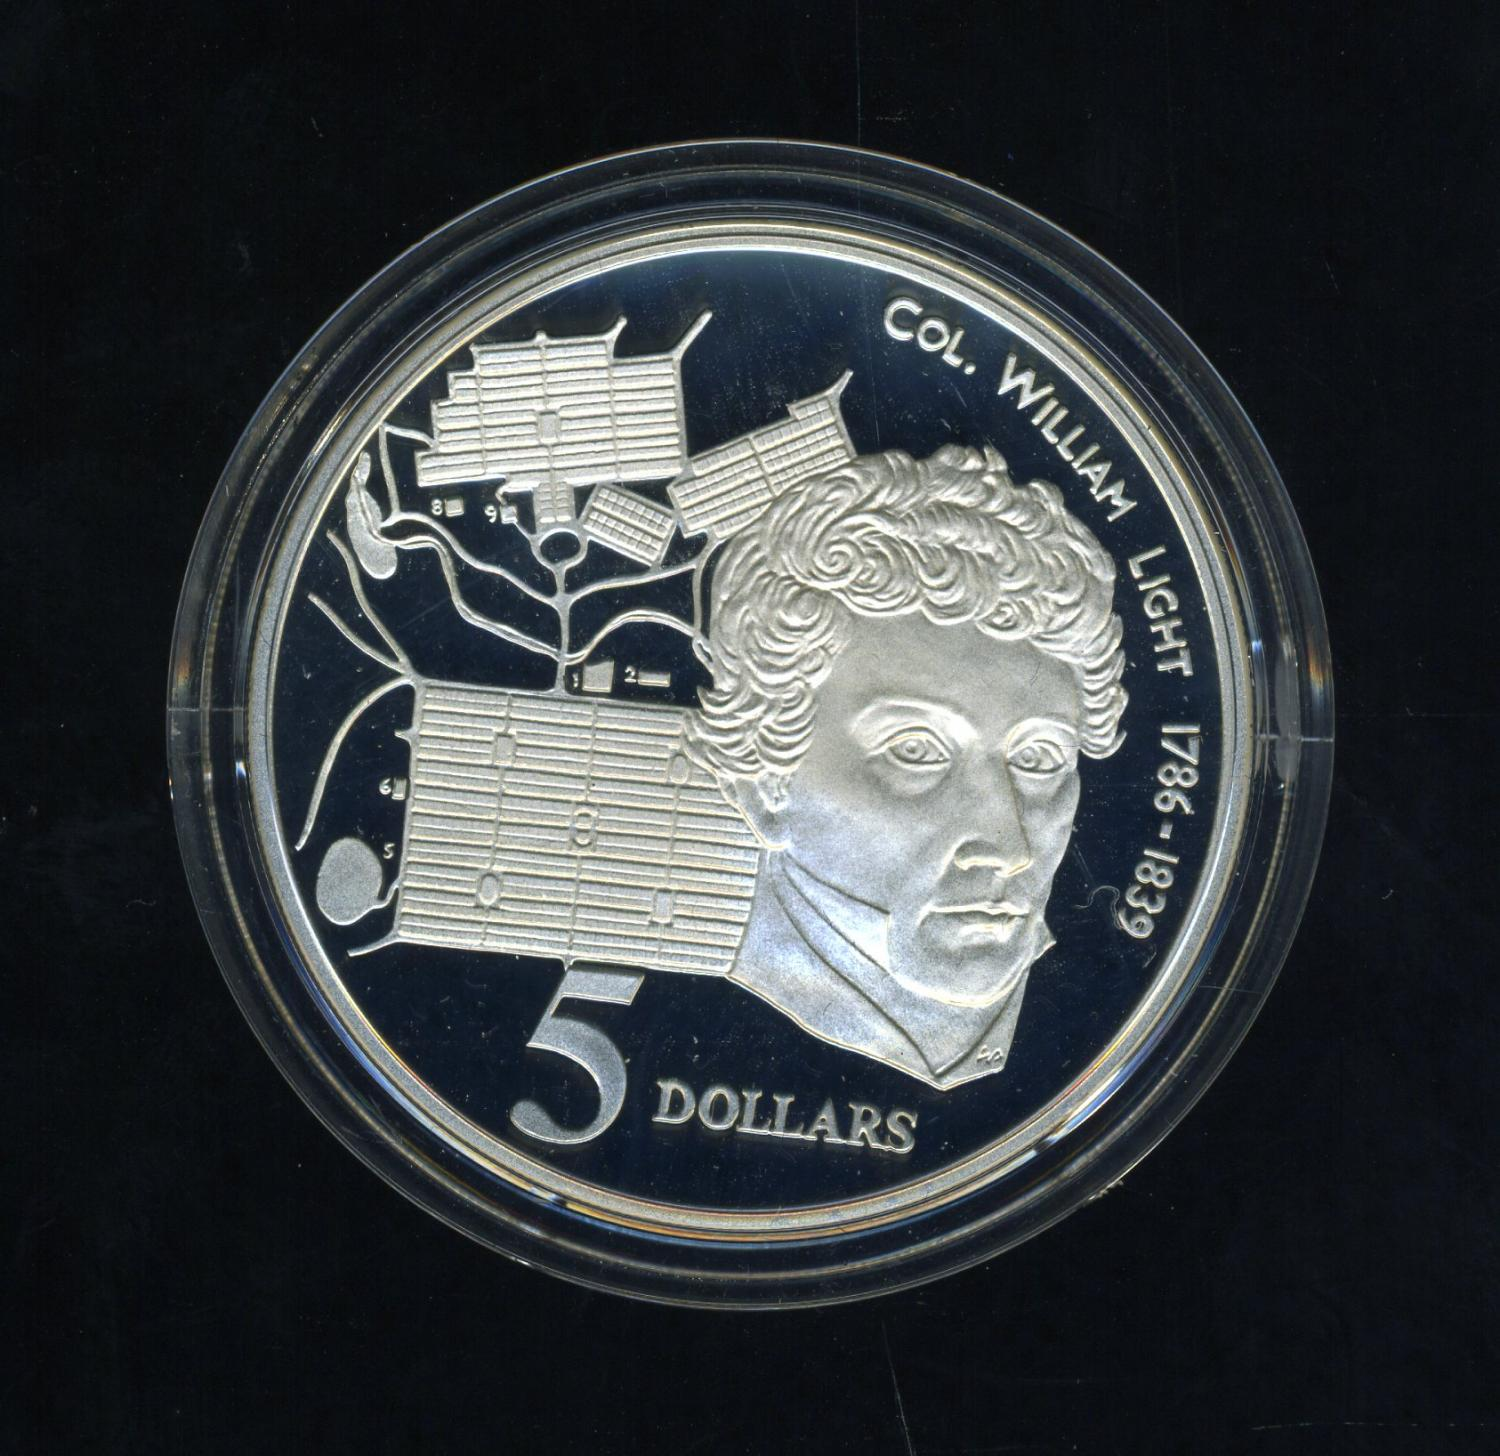 Thumbnail for 1995 $5.00 Silver Proof Coin in Capsule from Masterpieces in Silver Set - Col. William Light